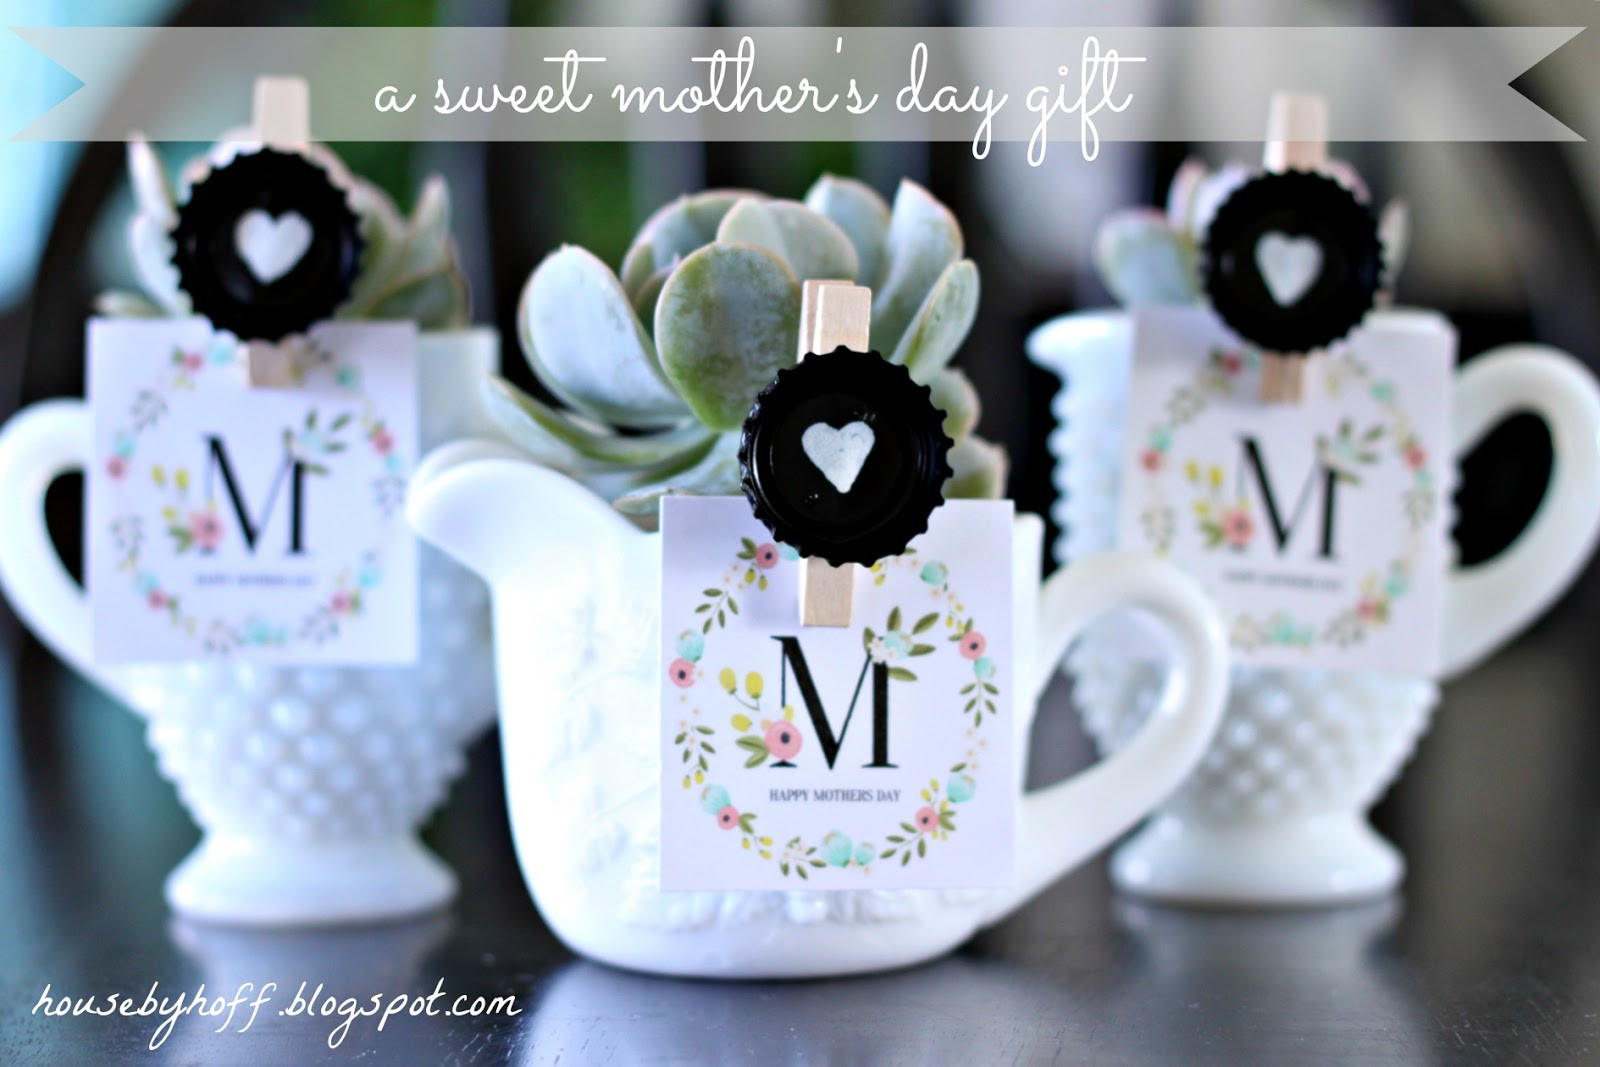 Best ideas about DIY Mother'S Day Gifts . Save or Pin A Sweet Mother s Day Gift House by Hoff Now.